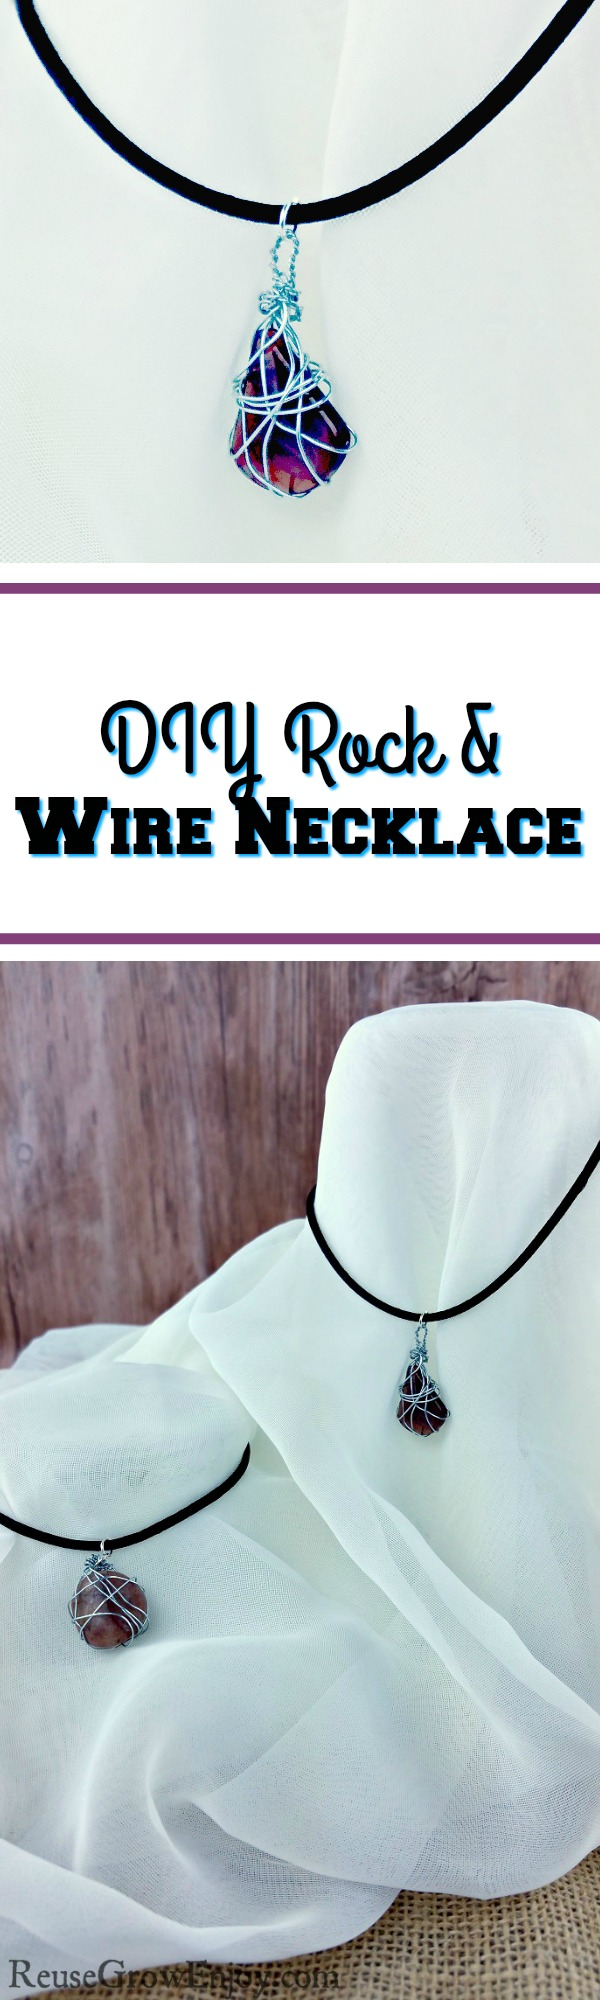 If you like jewelry and are looking for a craft project to do, I have just the thing for you. Check out this DIY Rock & Wire Jewelry Necklace!